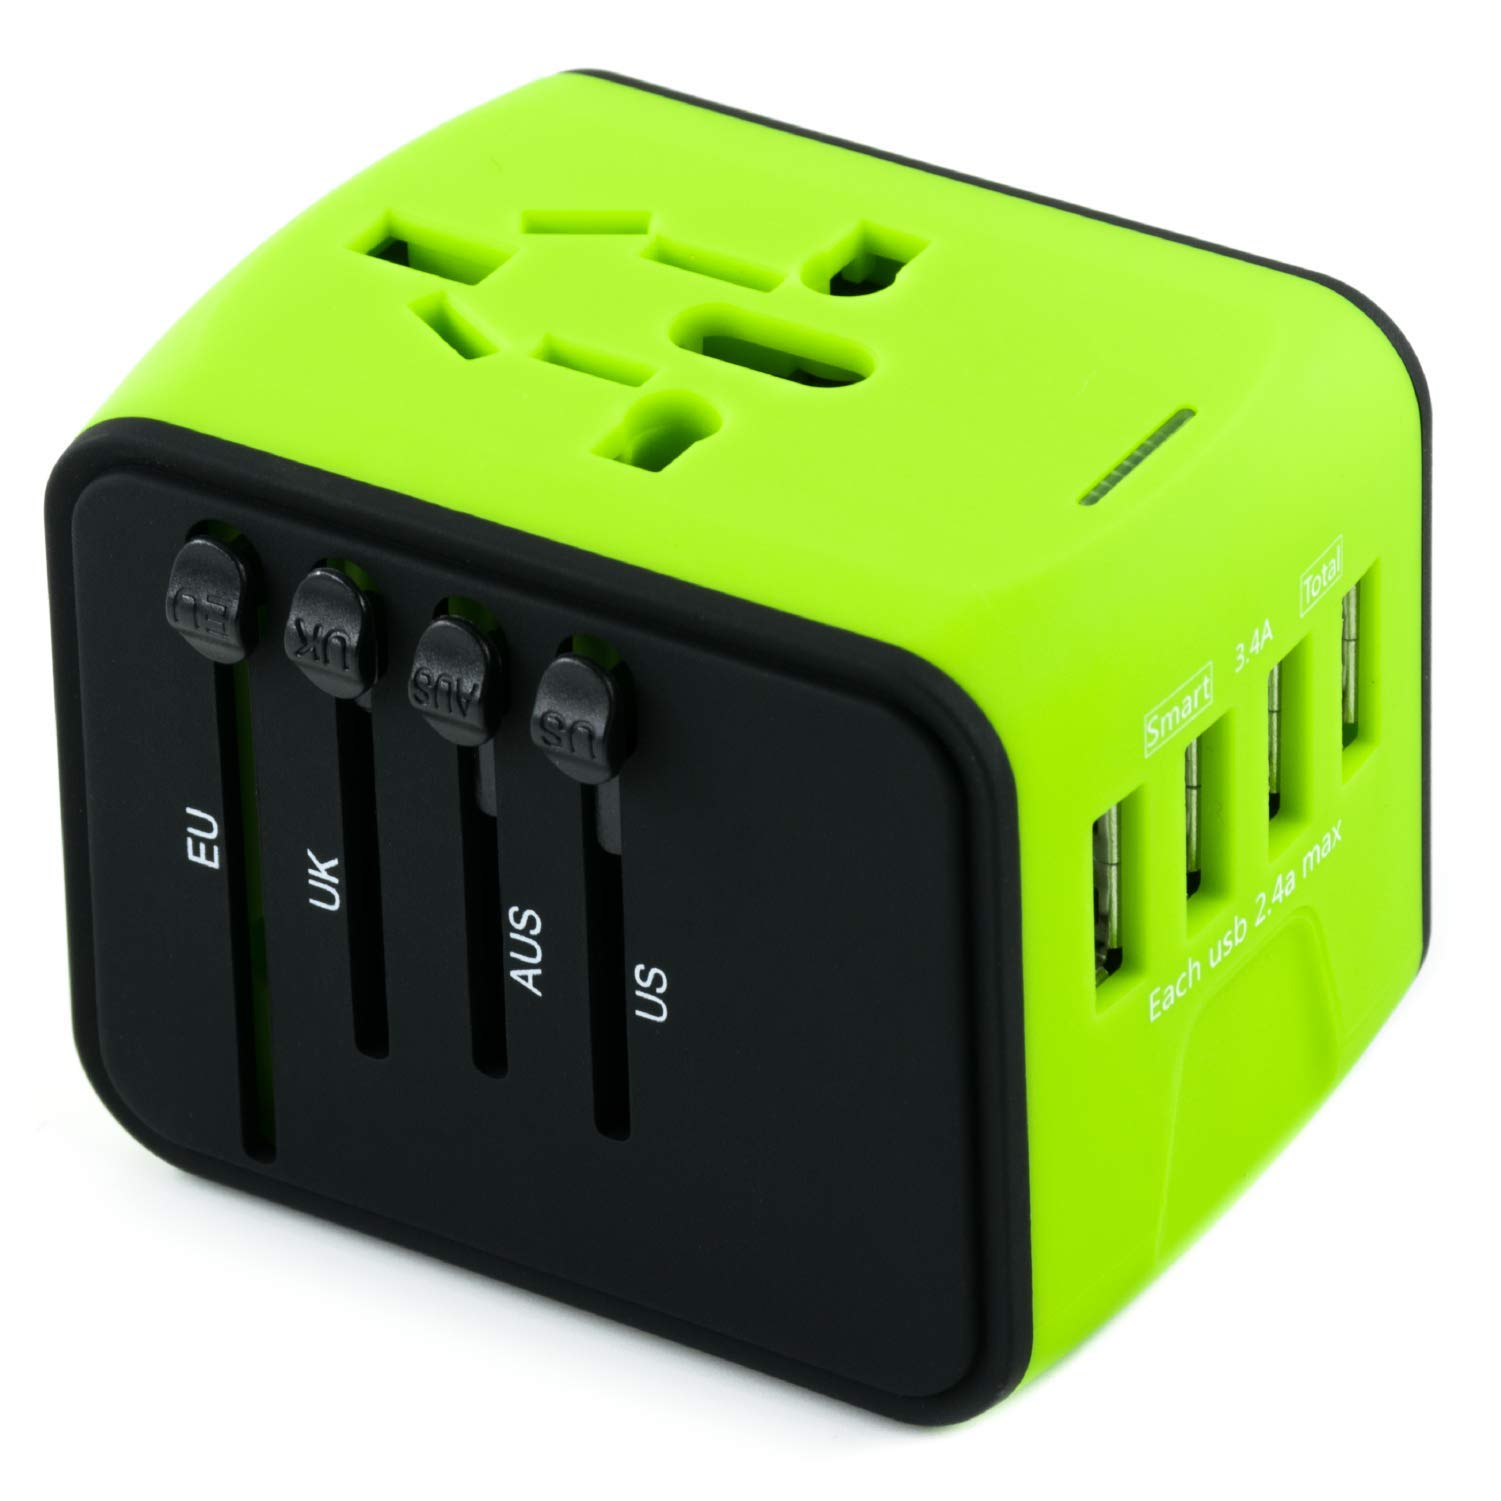 International Travel Adapter Universal Power Adaptor European Plug Converter Worldwide All in One with 2.4A 4 USB Ports and AC Socket US to Europe Plug Adapters for UK USA American EU AUS Asia (Green) by Limechoes